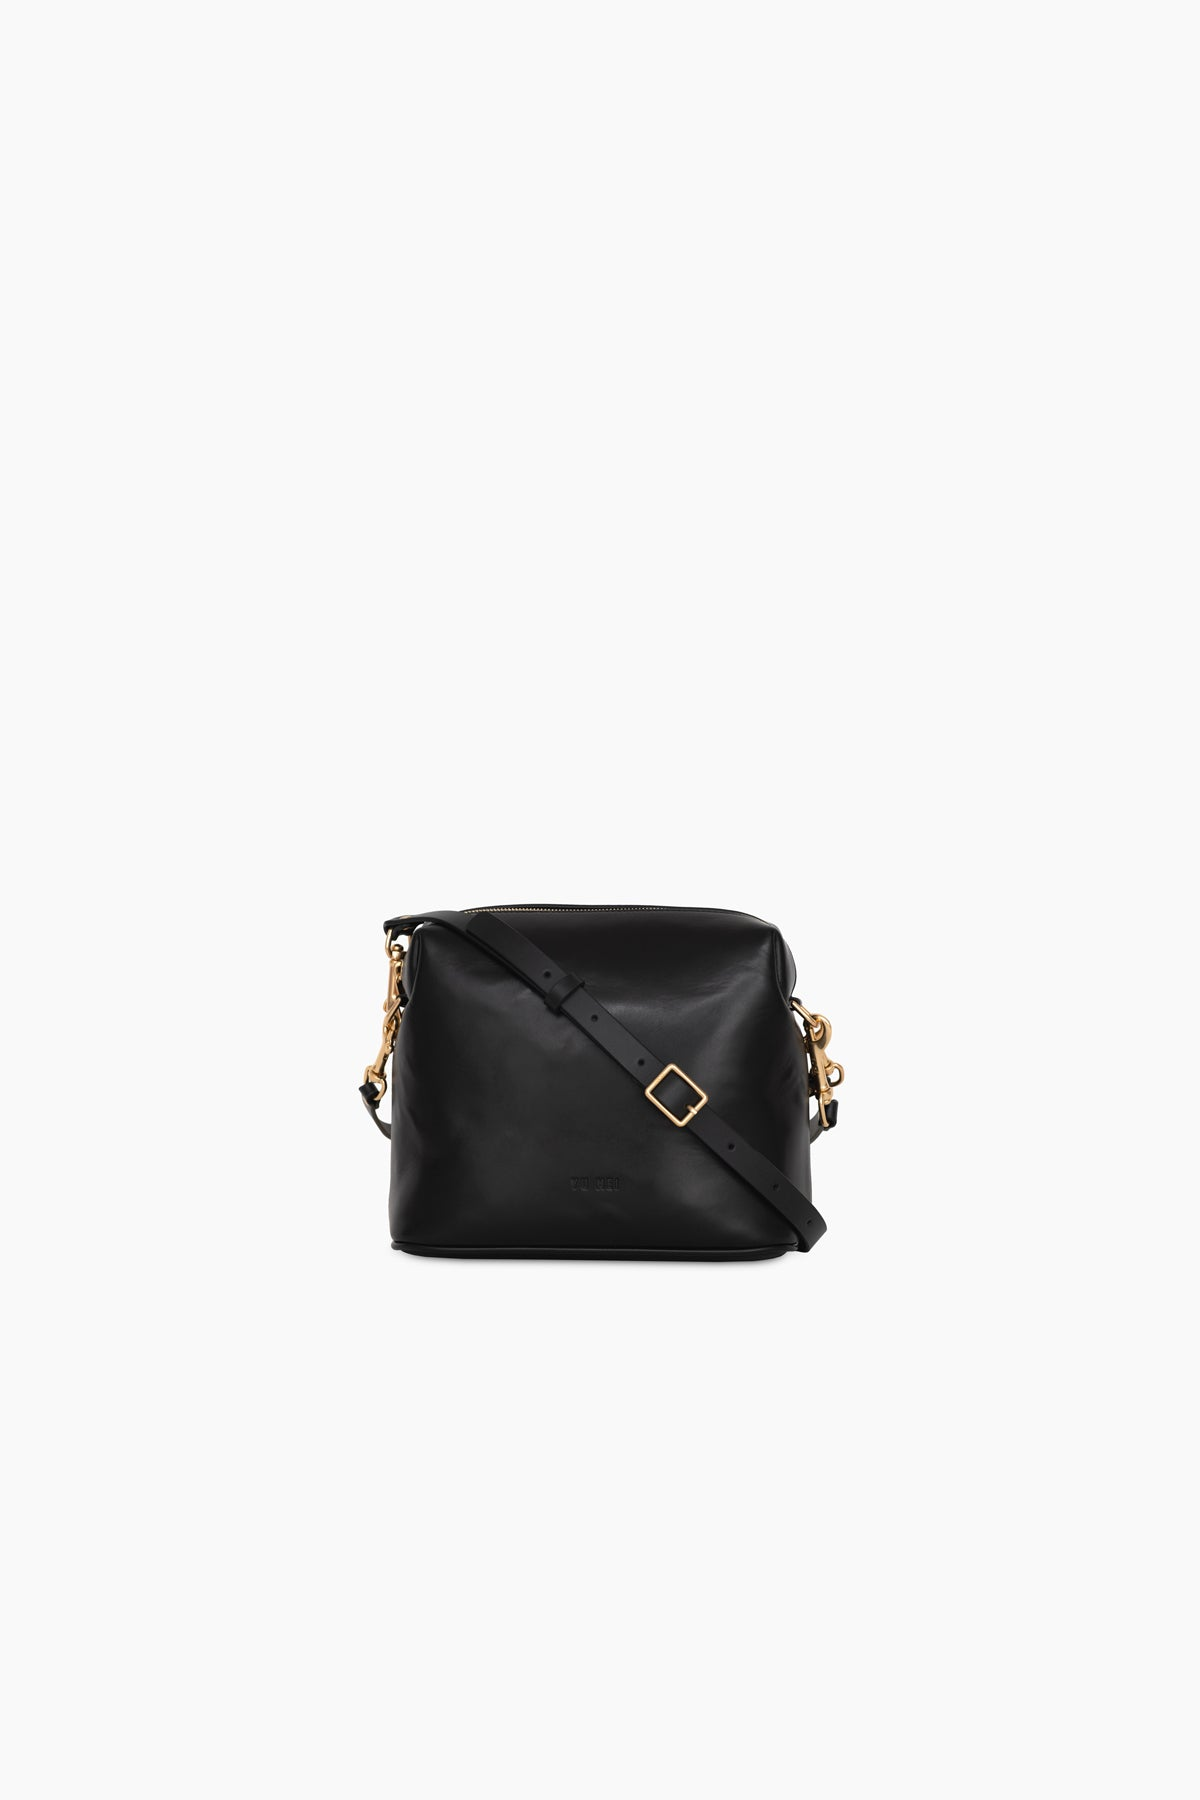 Ch'lita Bag | Black Lamb